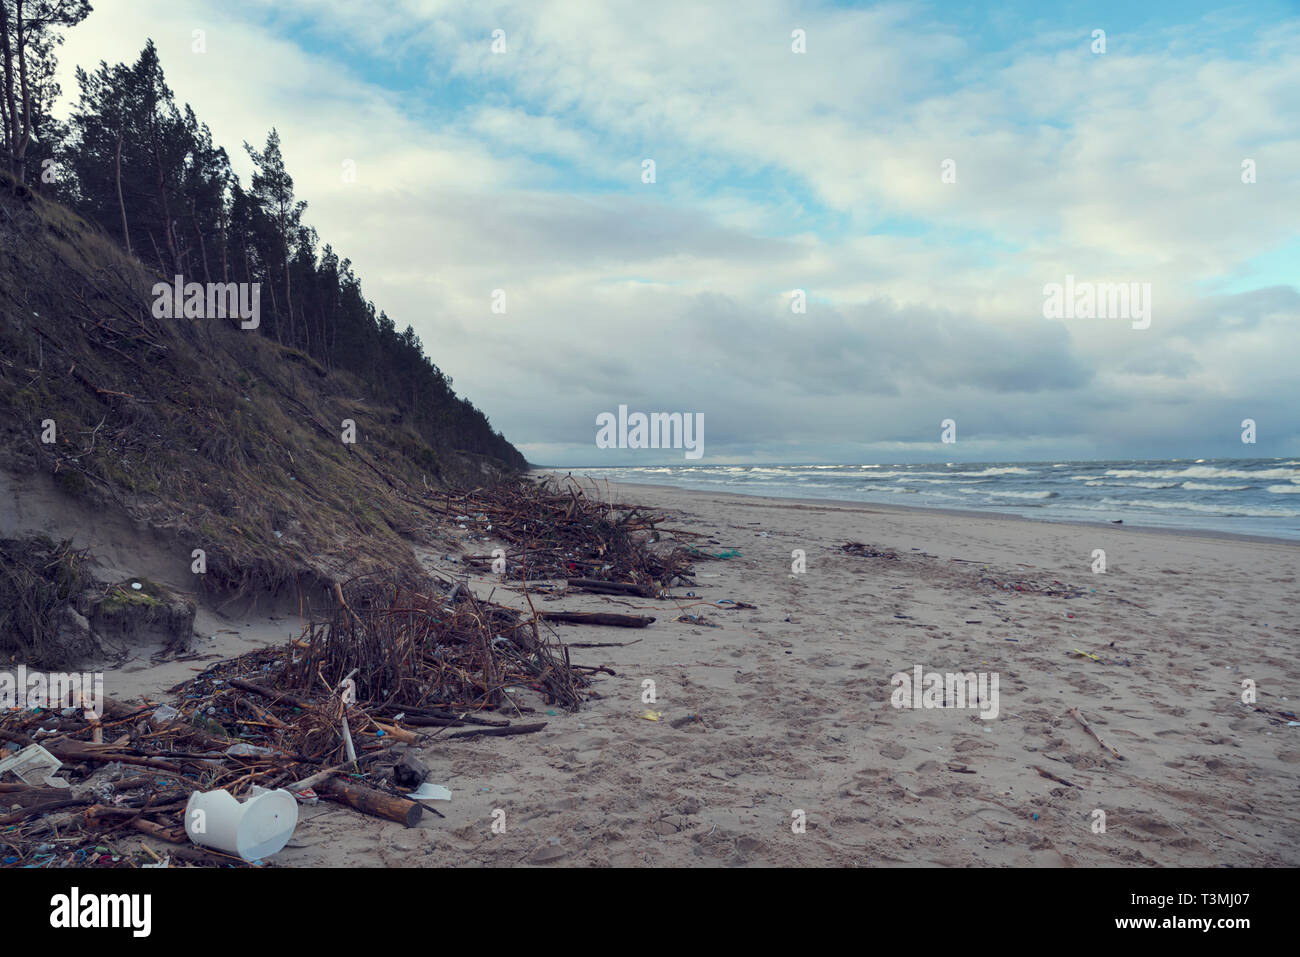 Polluted beach in North Poland in Stegna after sea storm Selective focus - Stock Image